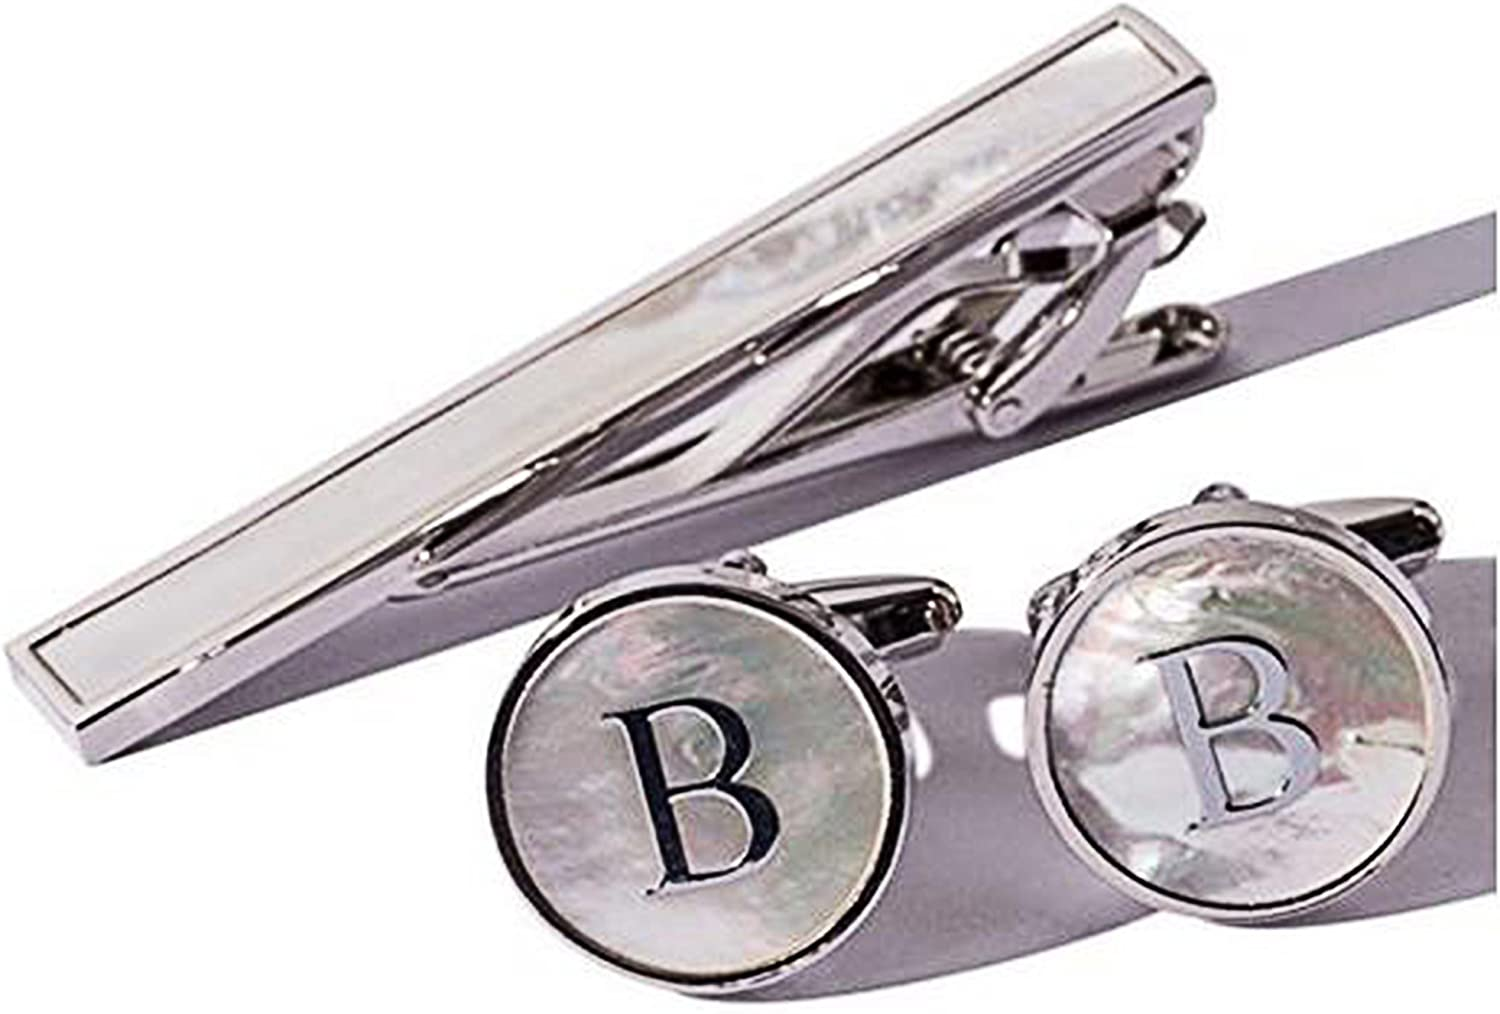 Digabi Platinum Plated 18K Rectangular Mother of Pearl Tie Clip and Initial Letter Cufflinks Set with Nice Box